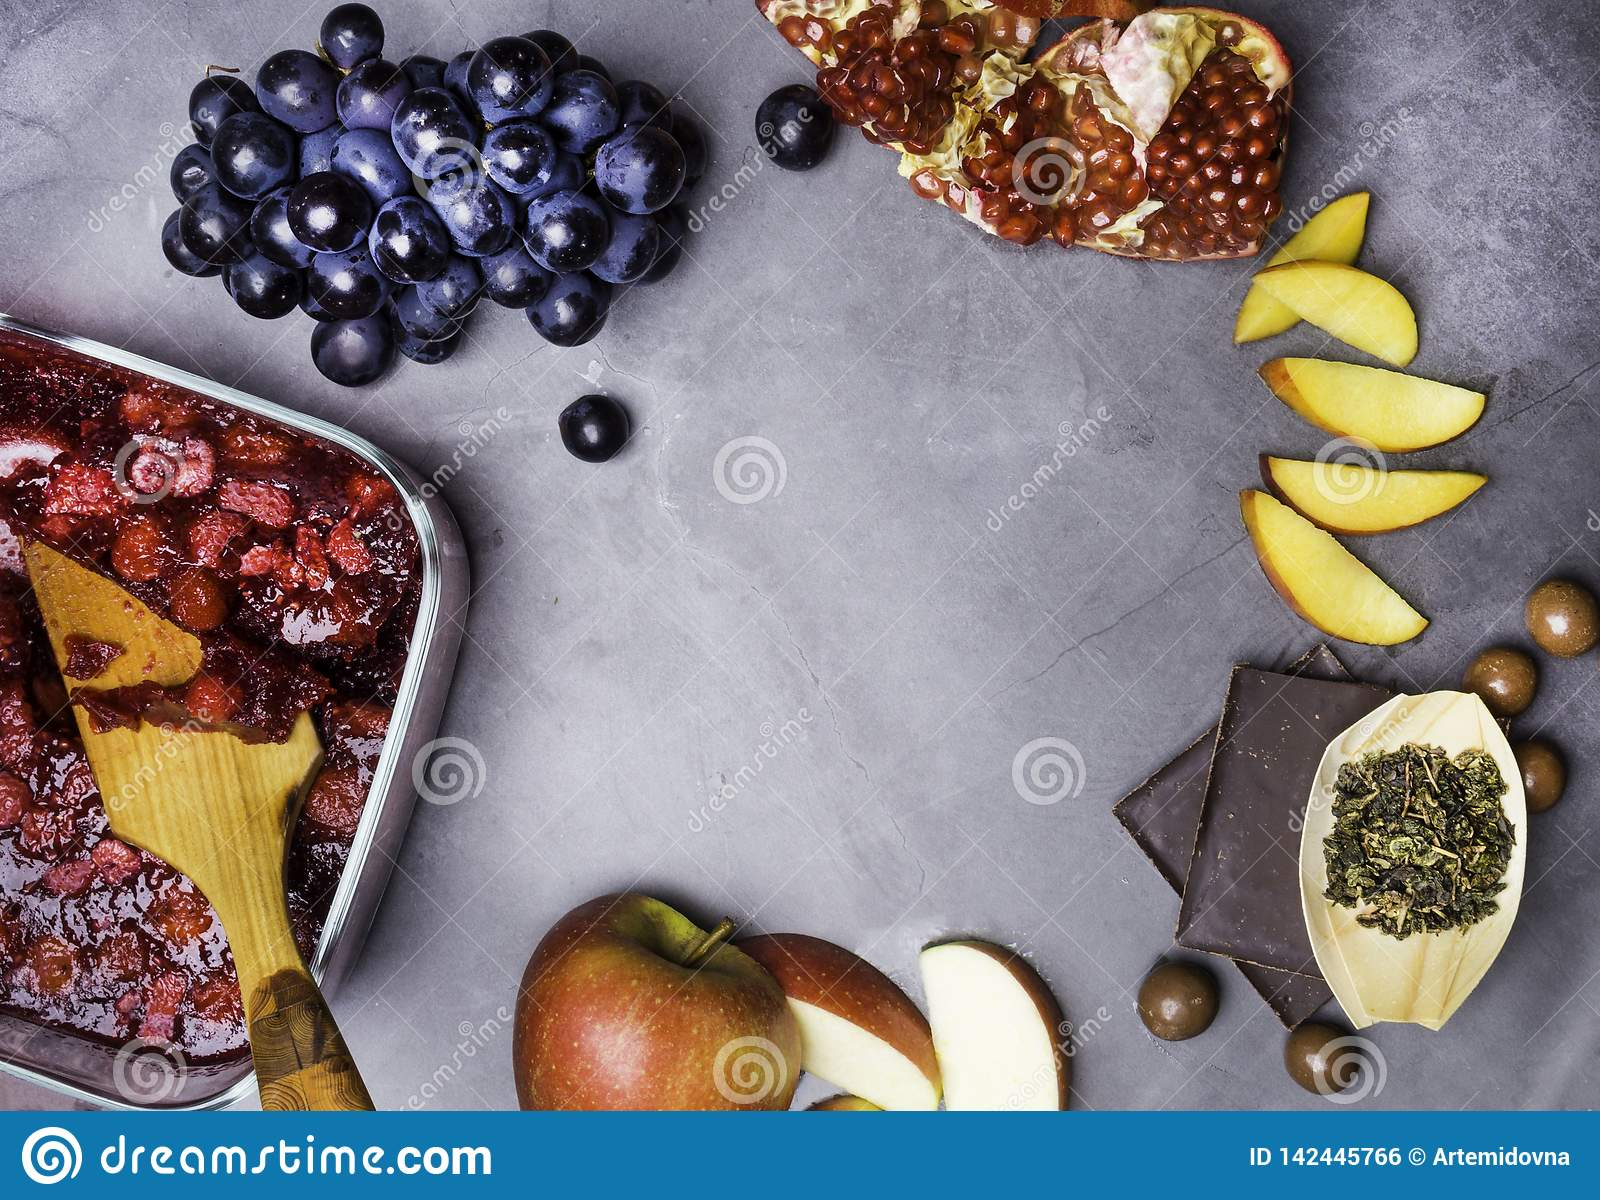 Foods That Are Good Sources Of Resveratrol Flavonoids And Antioxidants Stock Photo Image Of Background Healthy 142445766